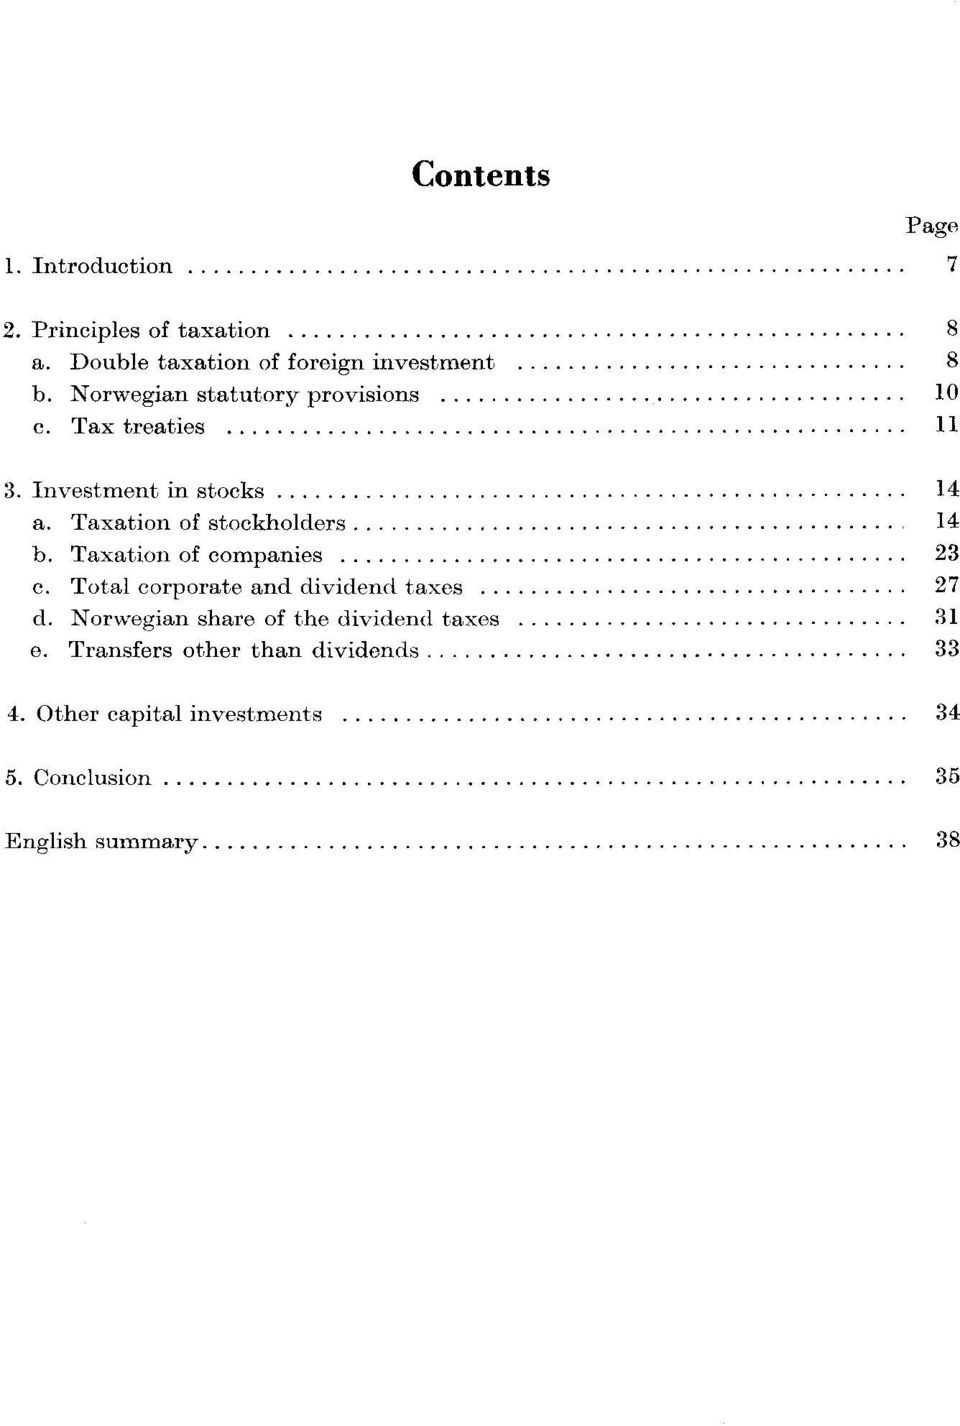 Taxation of stockholders 14 b. Taxation of companies 23 c. Total corporate and dividend taxes 27 d.